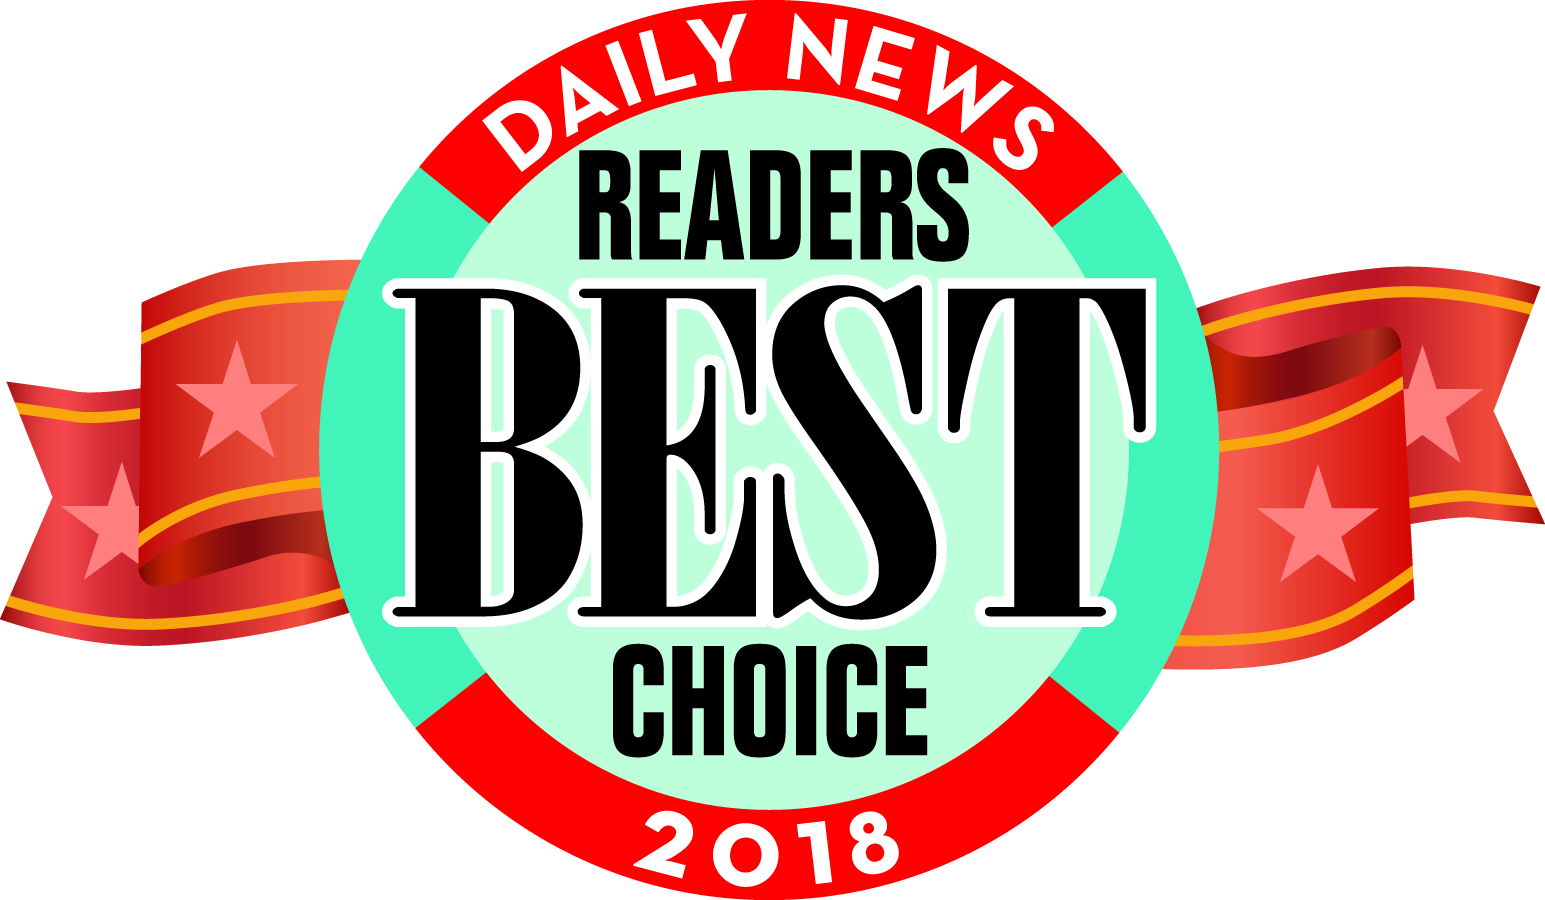 Daily News Readers Choice Best 2018